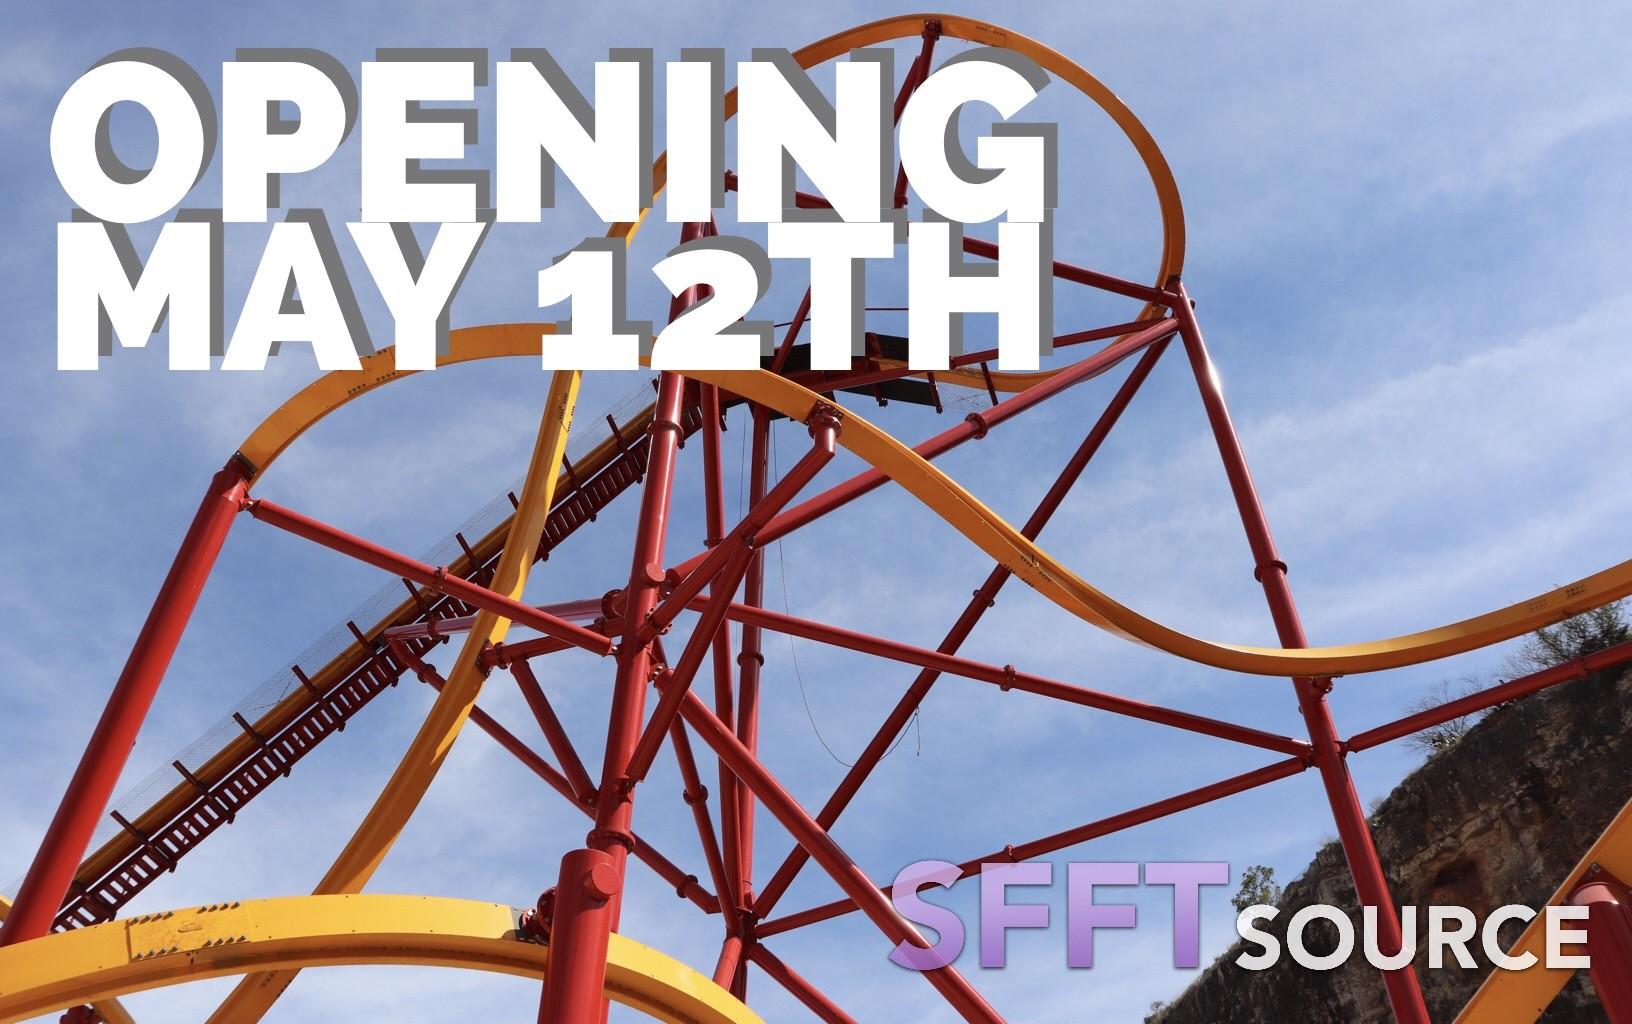 Wonder Woman Golden Lasso Coaster is set to open May 12th.